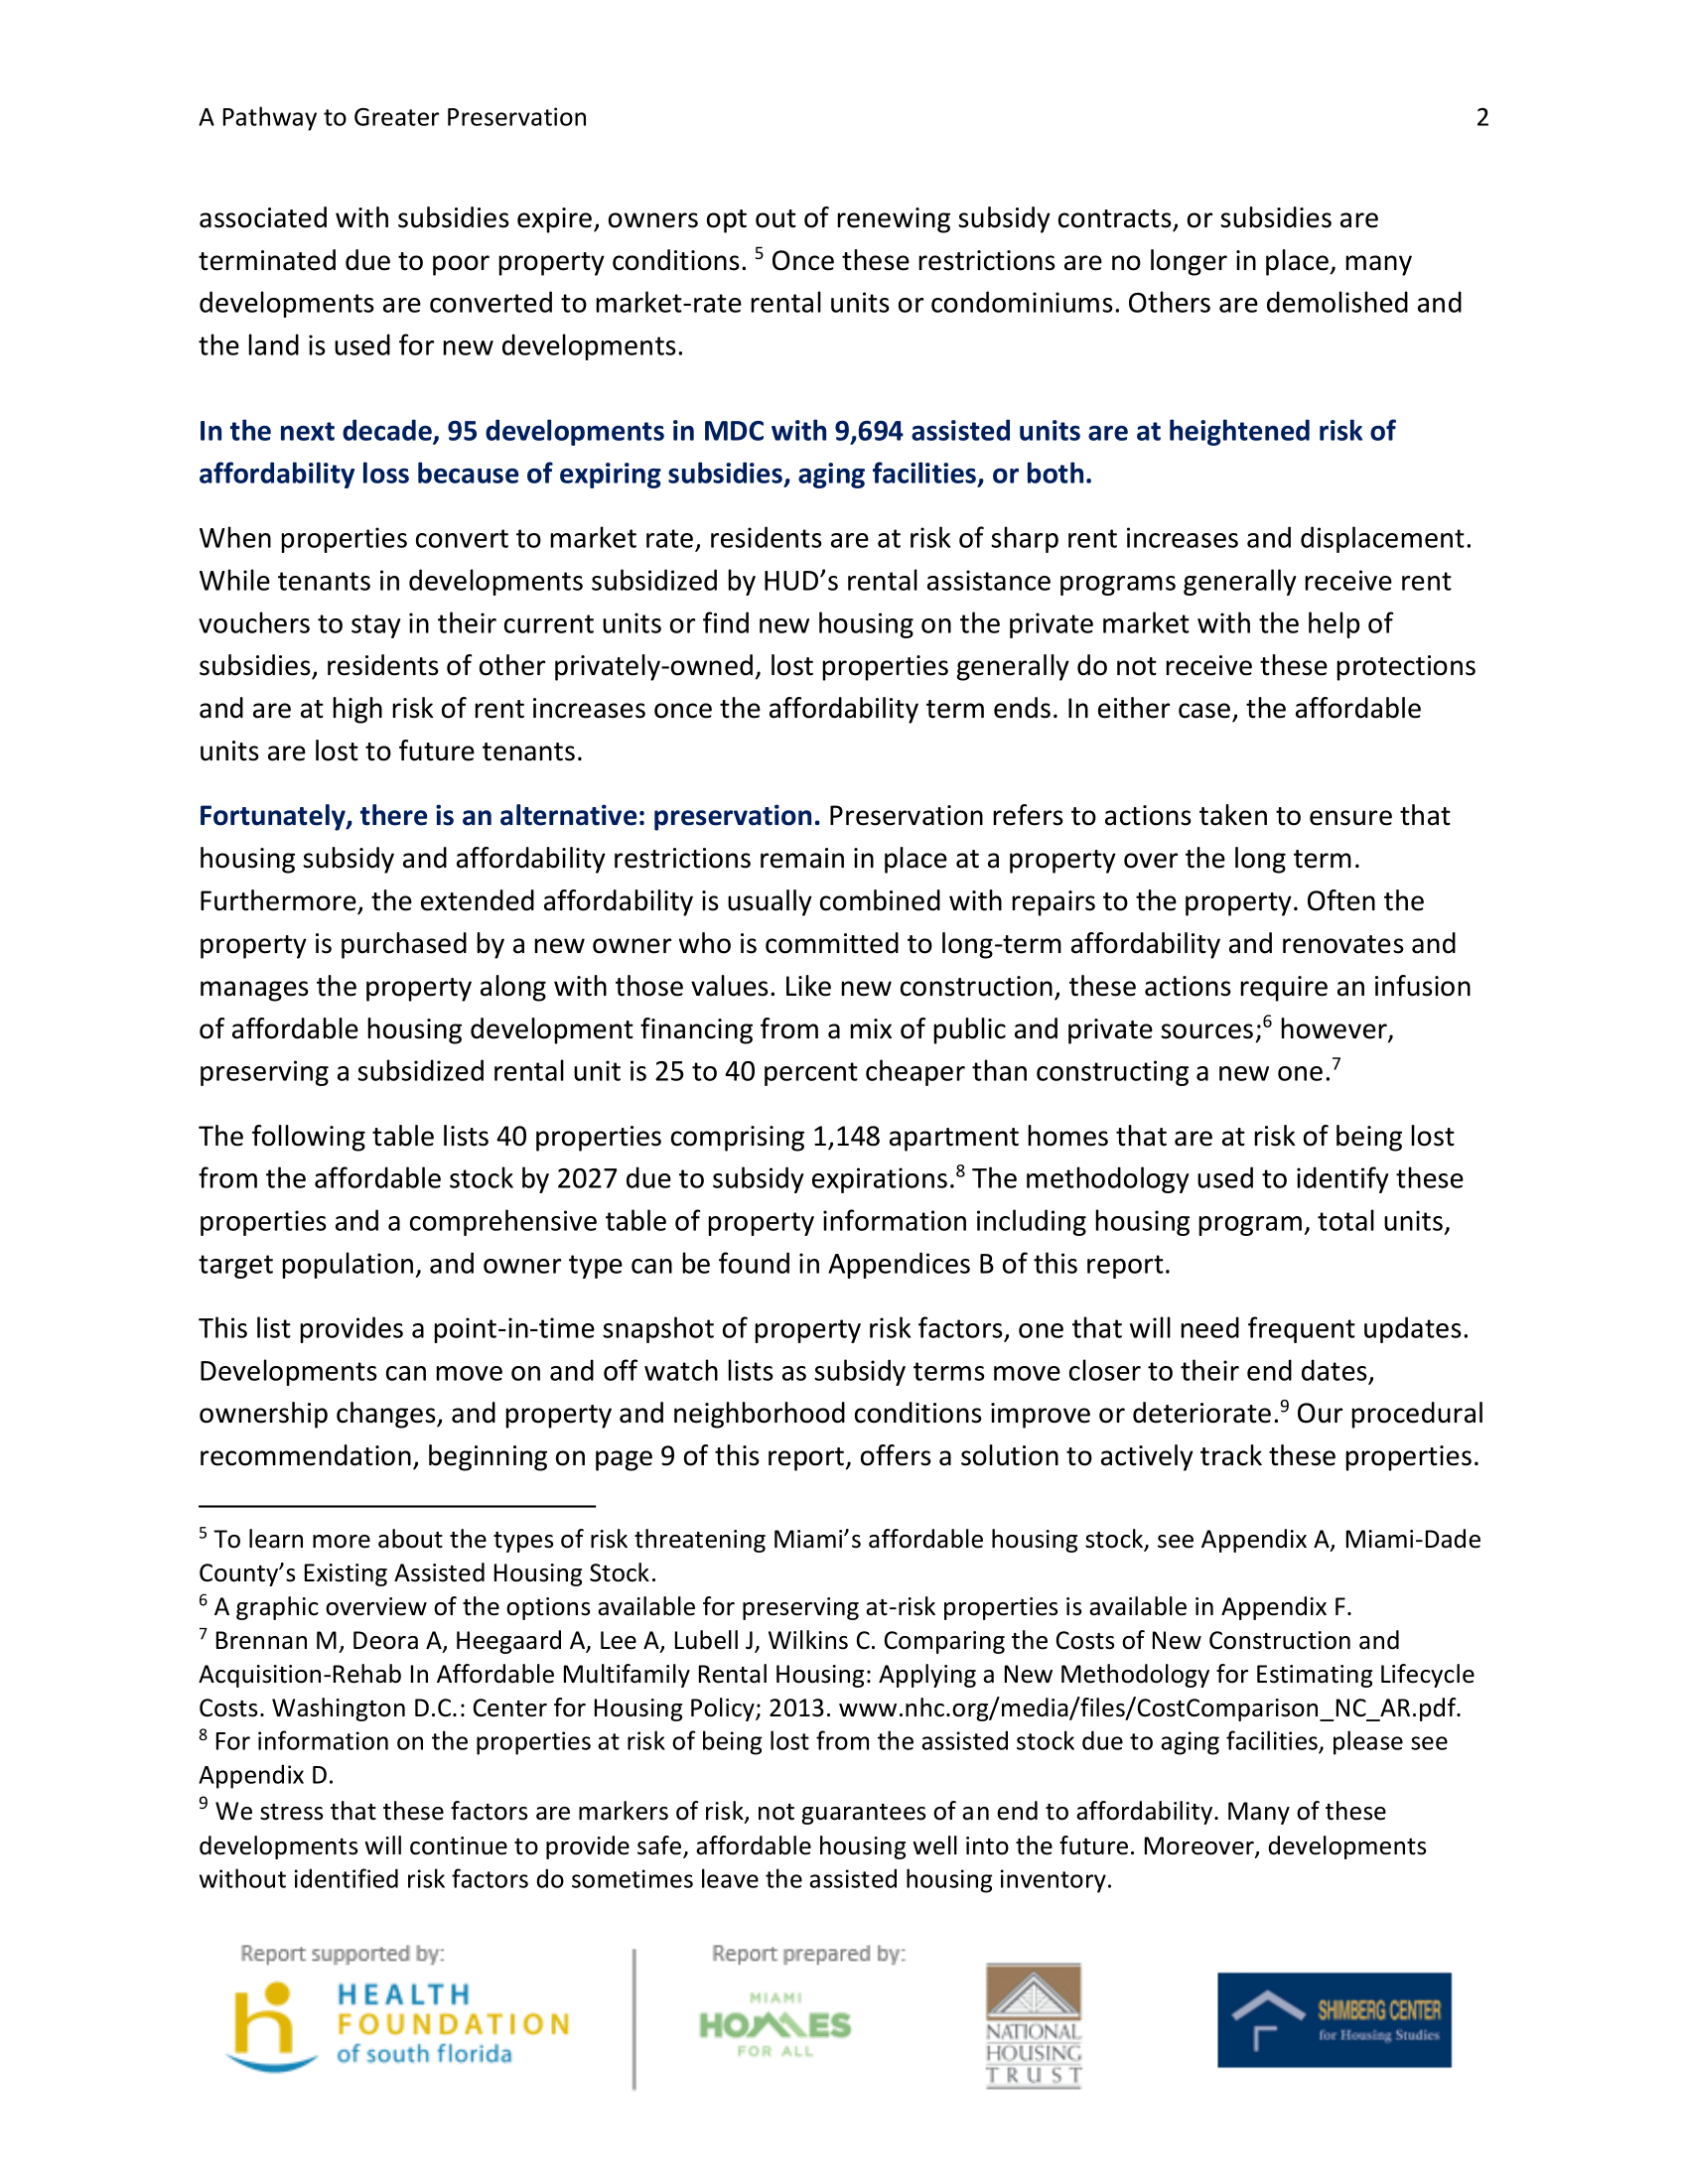 A Pathway to Greater Preservation - February 2018-10.png